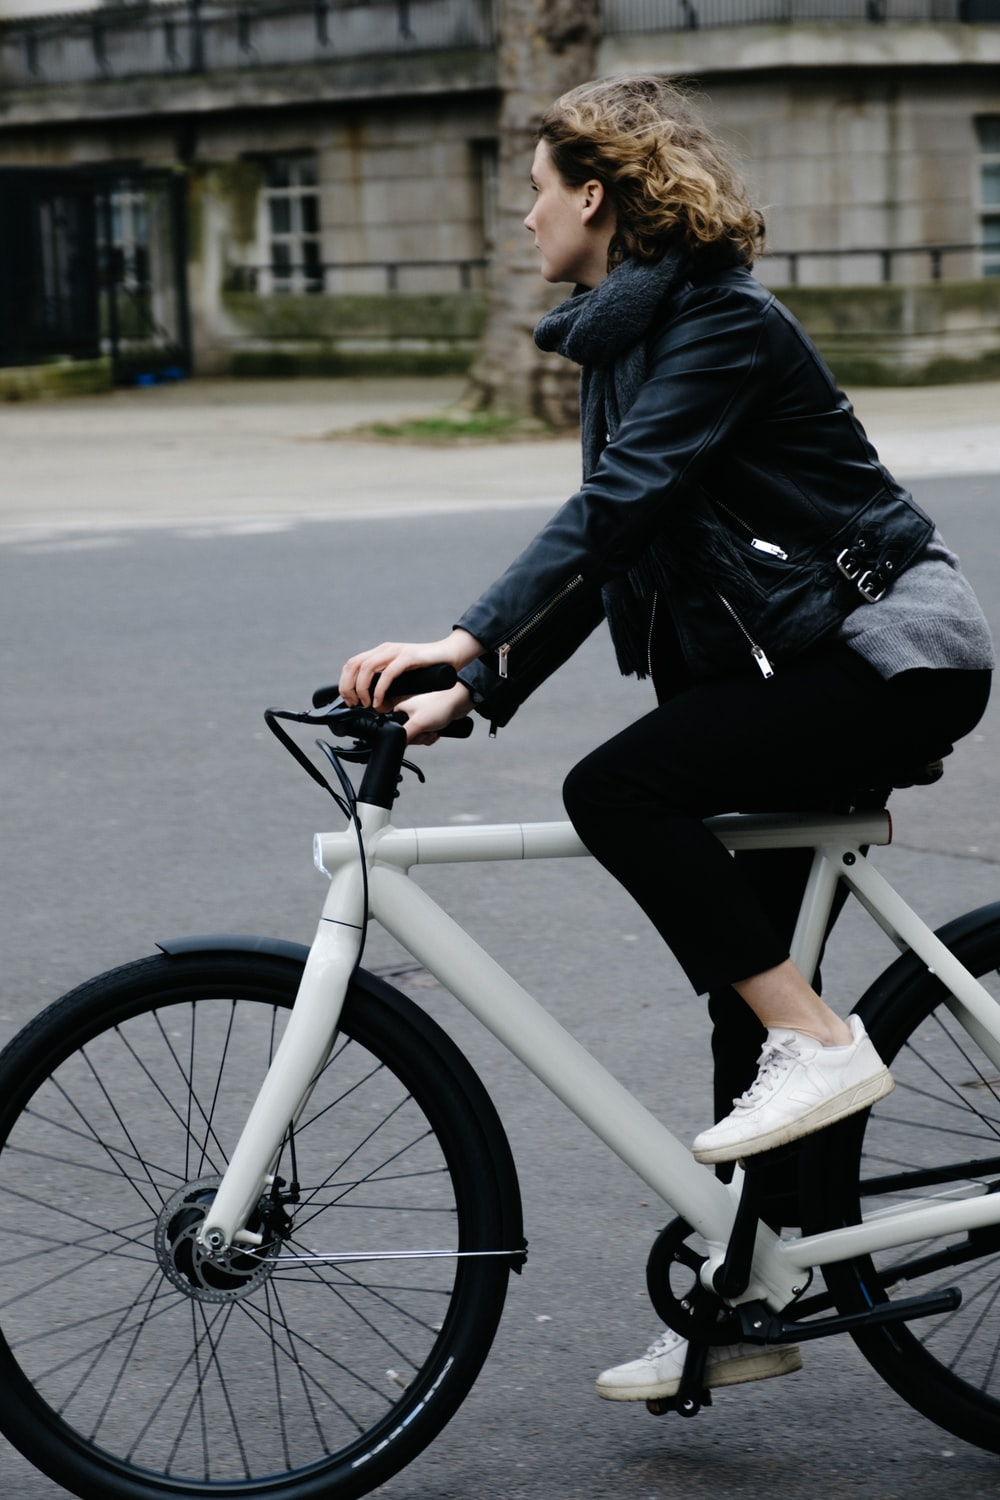 person in black jacket riding on white bicycle during daytime